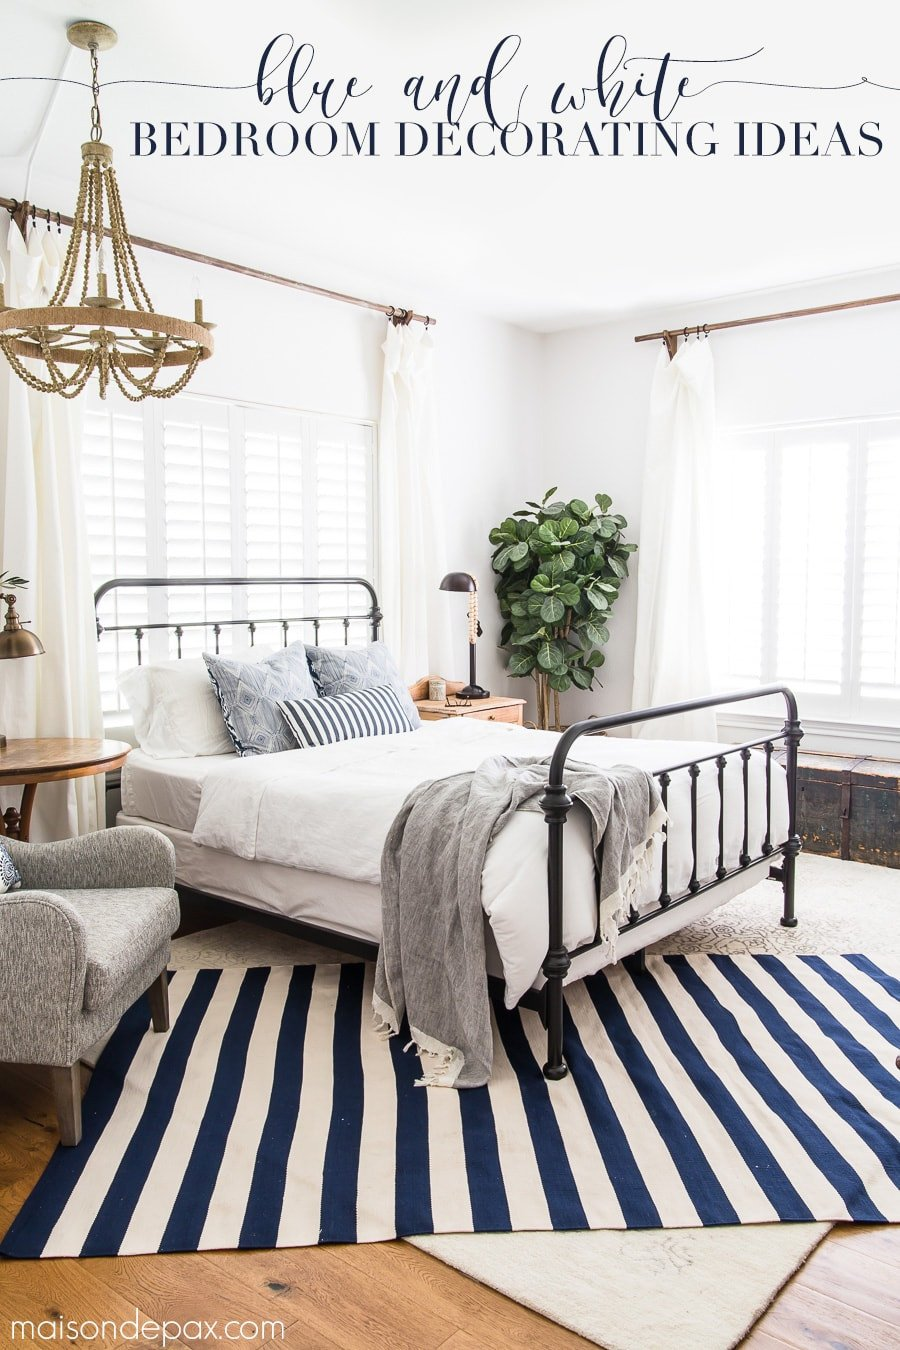 Blue and White Bedroom Decor Best Of Blue and White Bedroom Ideas for Summer Maison De Pax